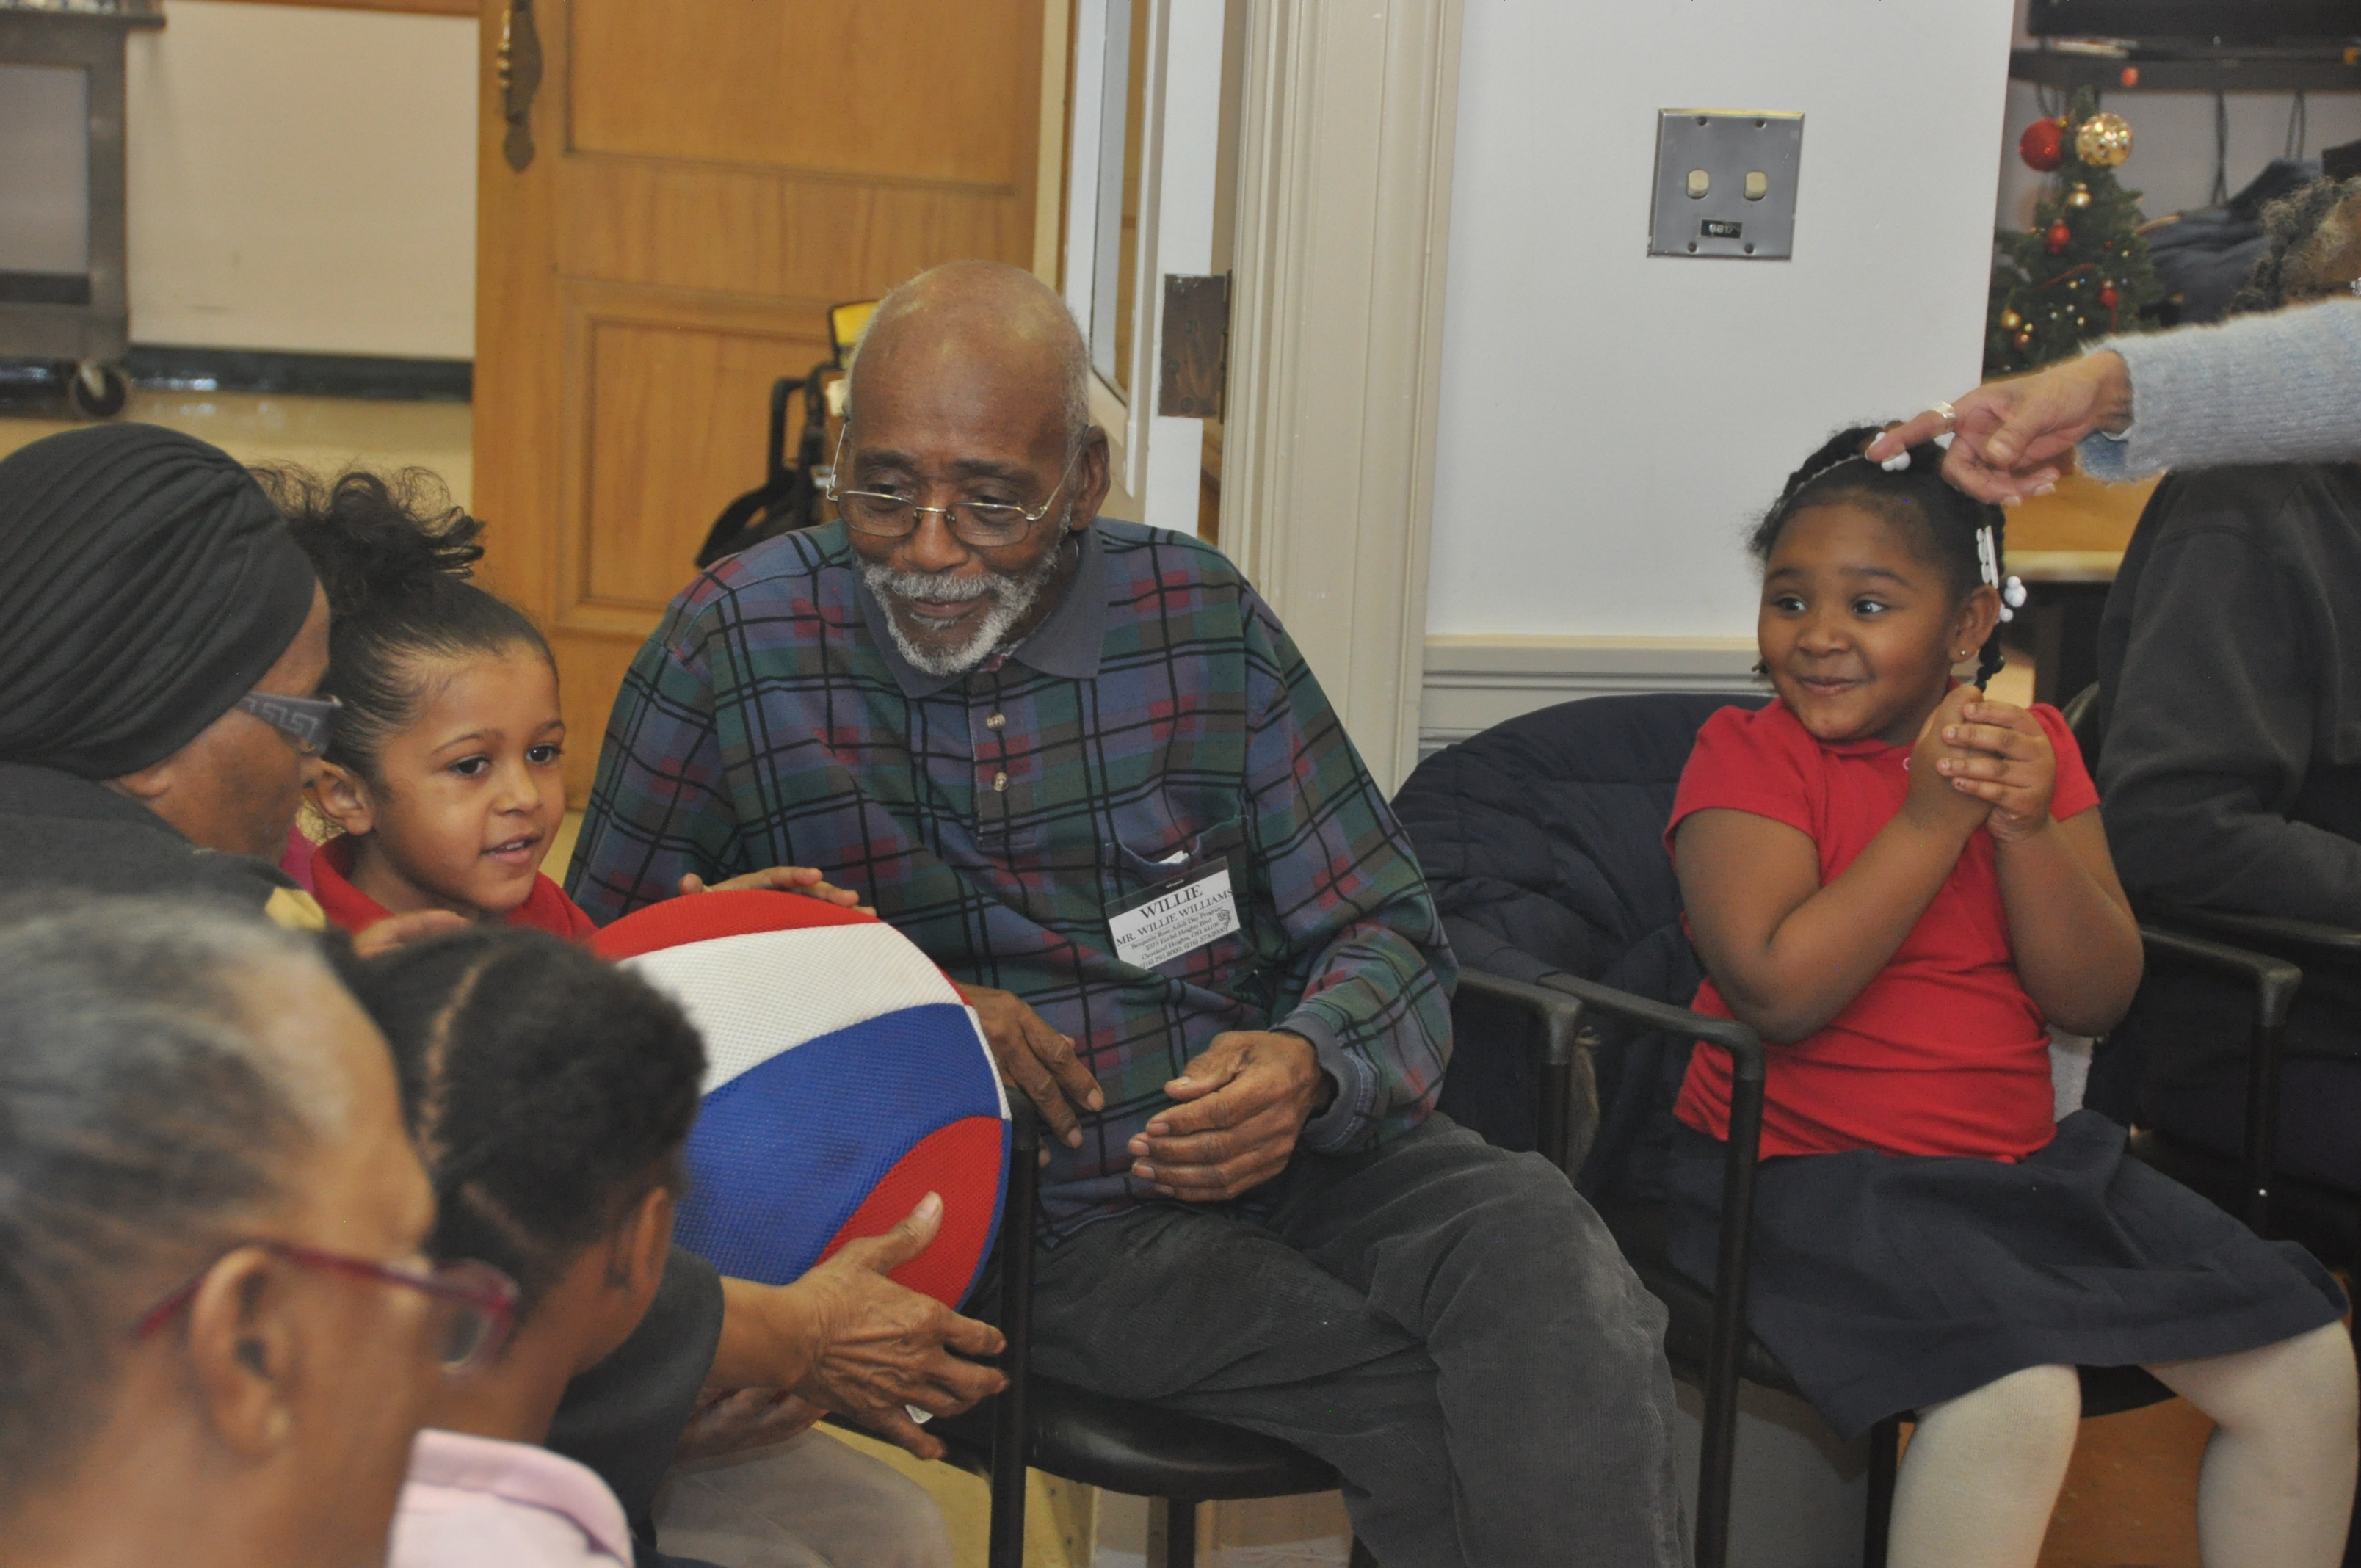 Donate- older adult with a group of children